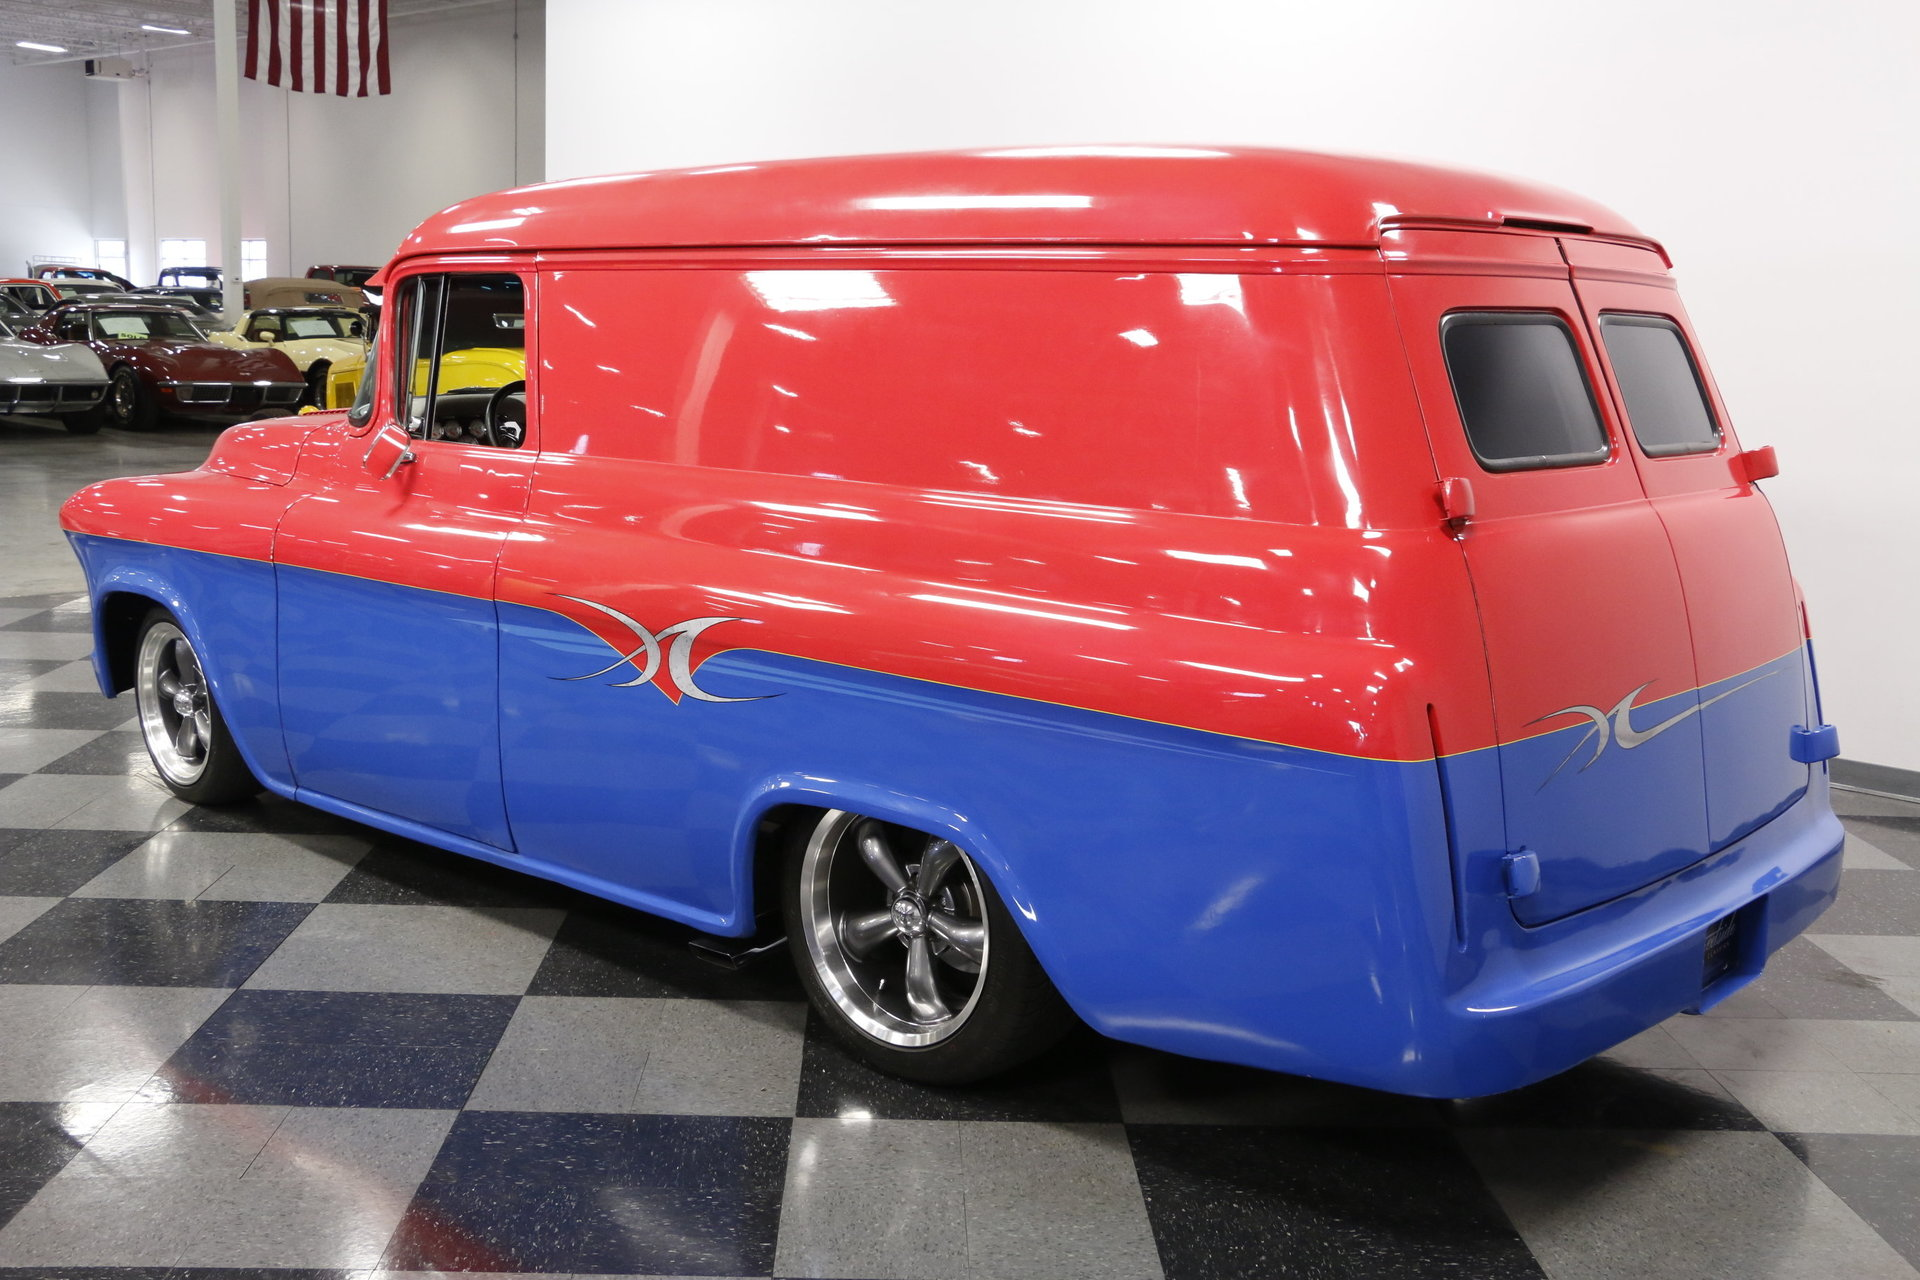 1955 Chevrolet Panel Delivery Streetside Classics The Nations 1961 Chevy Van Show More Photos